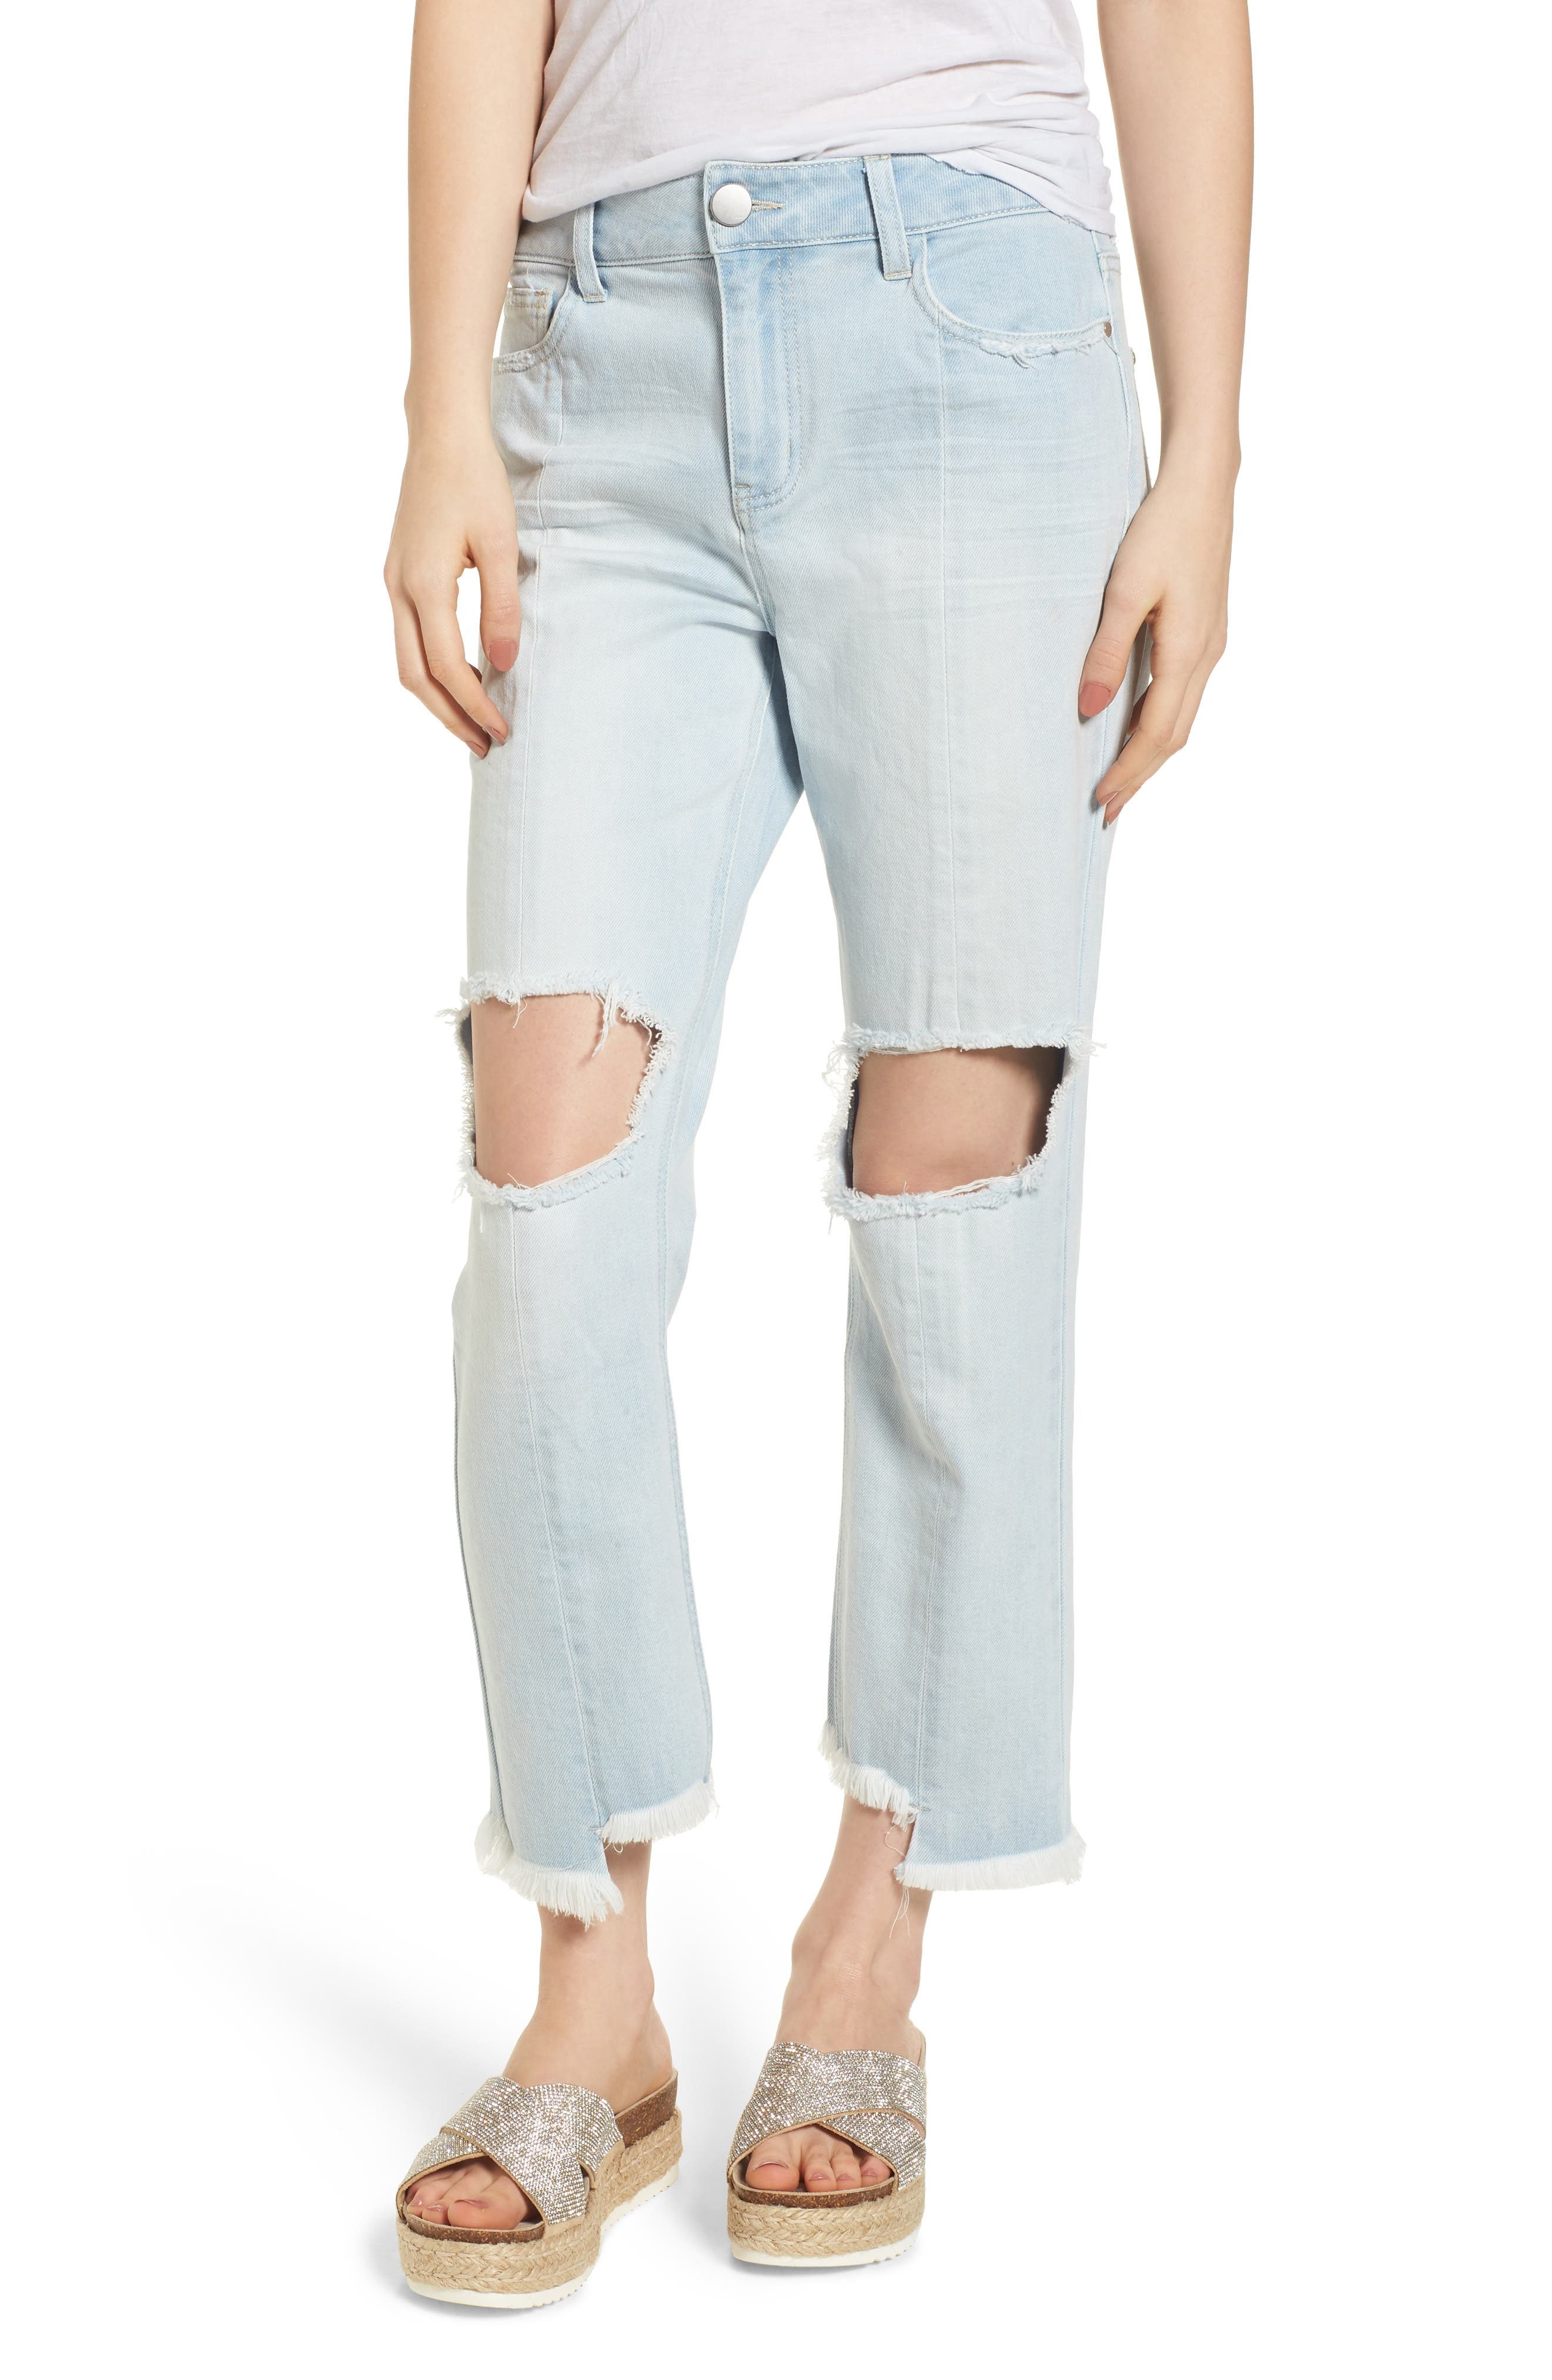 TINSEL, Ripped Boyfriend Jeans, Main thumbnail 1, color, SUPER LIGHT WASH